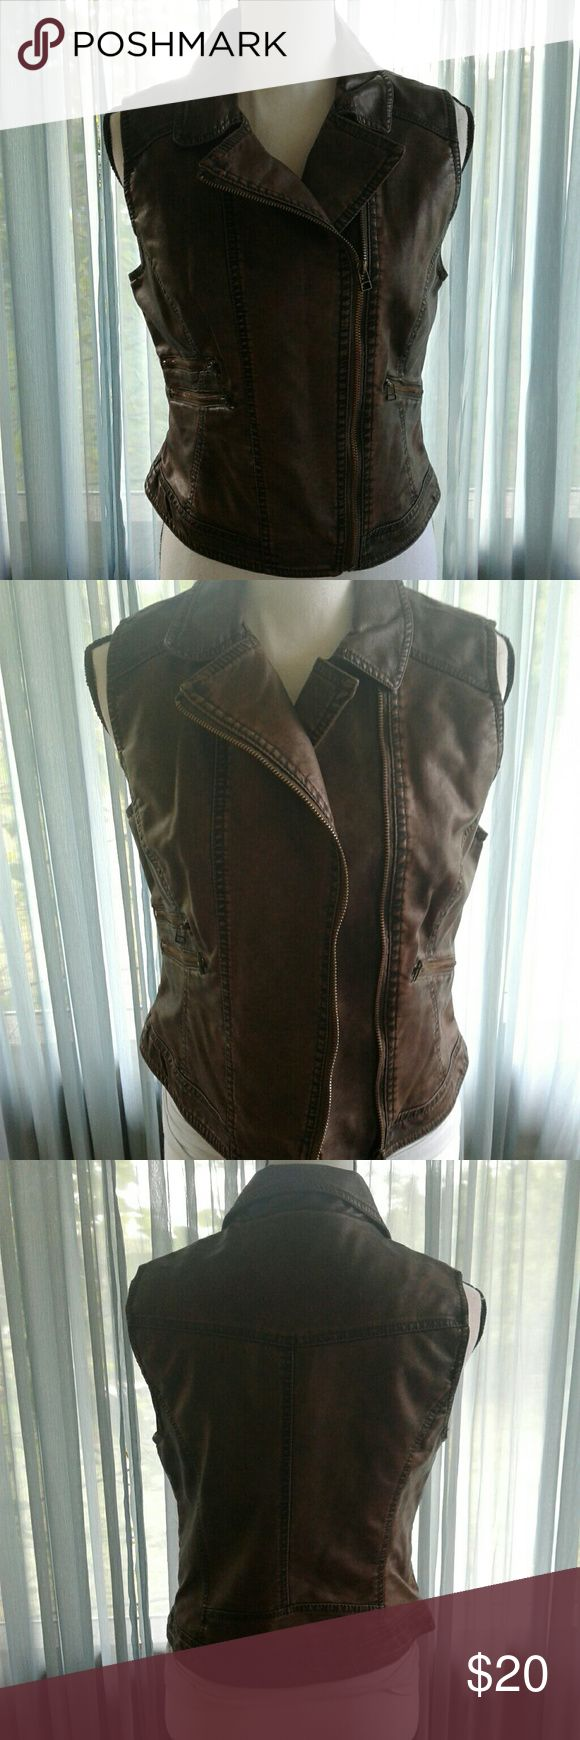 "Body central faux leather moto vest Women's like new brown/black acid wash looking body central moto vest size Medium. 2 front zipper pockets on right side, one zip pocket on left. Measurements SS 14"" Chest 18"" length 21"". Beautiful vest! Thanks for looking! Bundle to save! Body Central Tops #vestswomens"